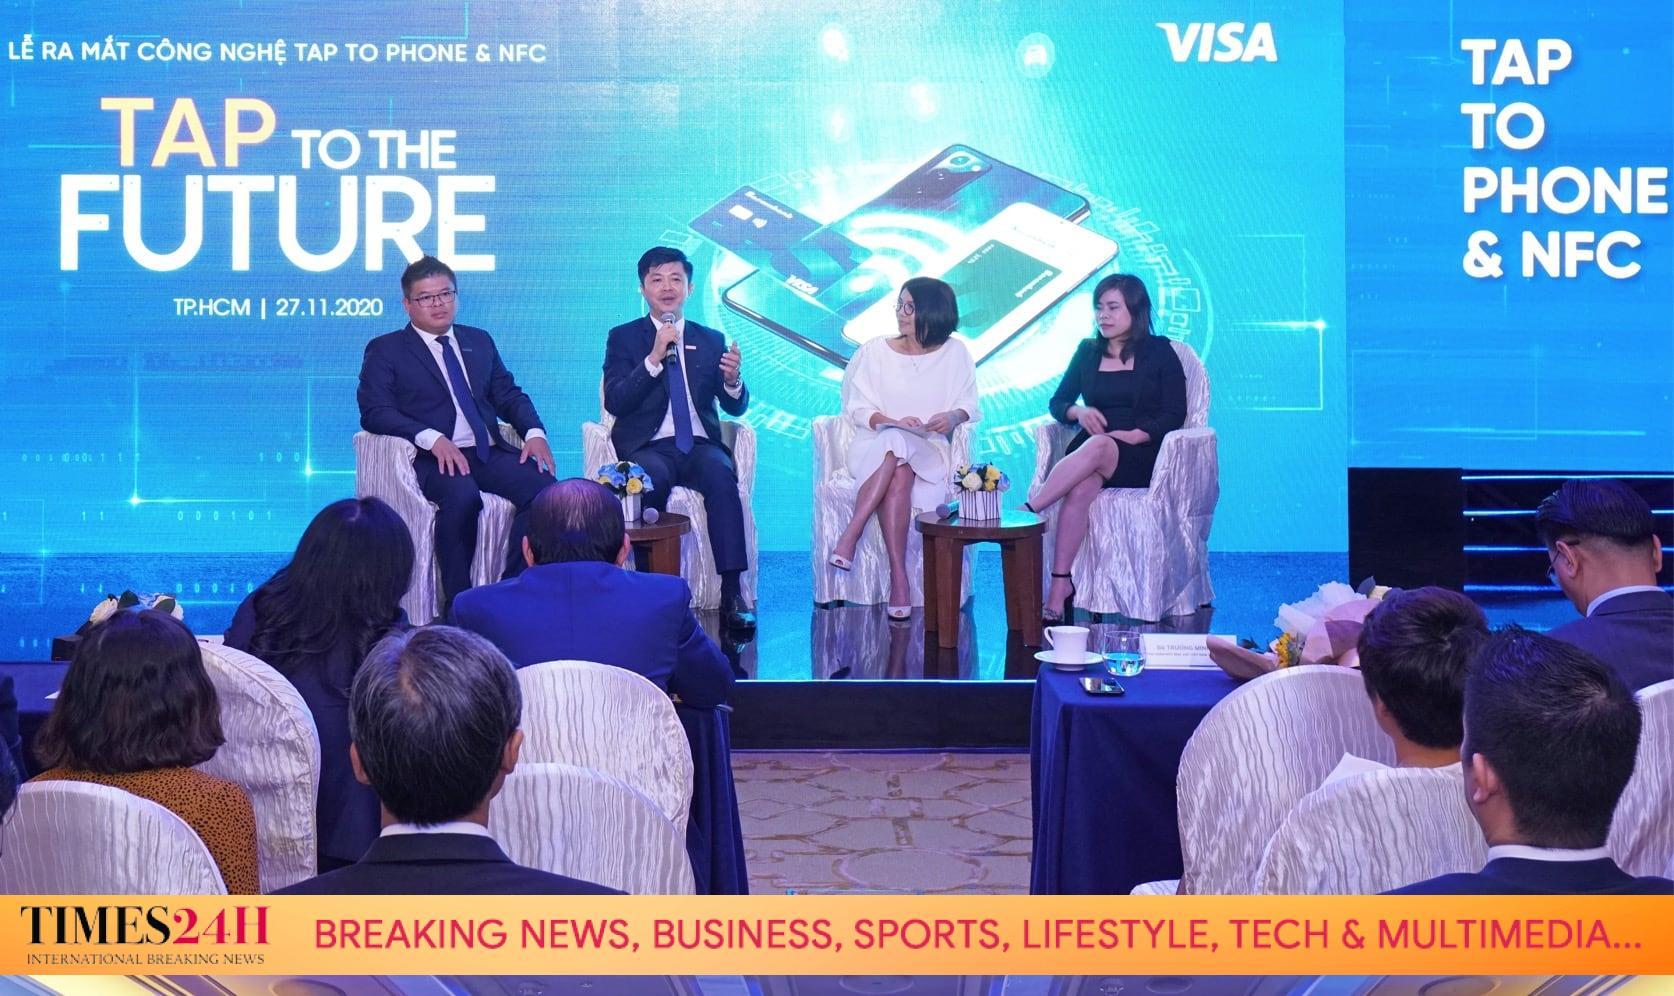 World's first launch of Visa Tap to Phone with Rapid Seller Onboarding set to bring more Vietnamese businesses into the digital economy